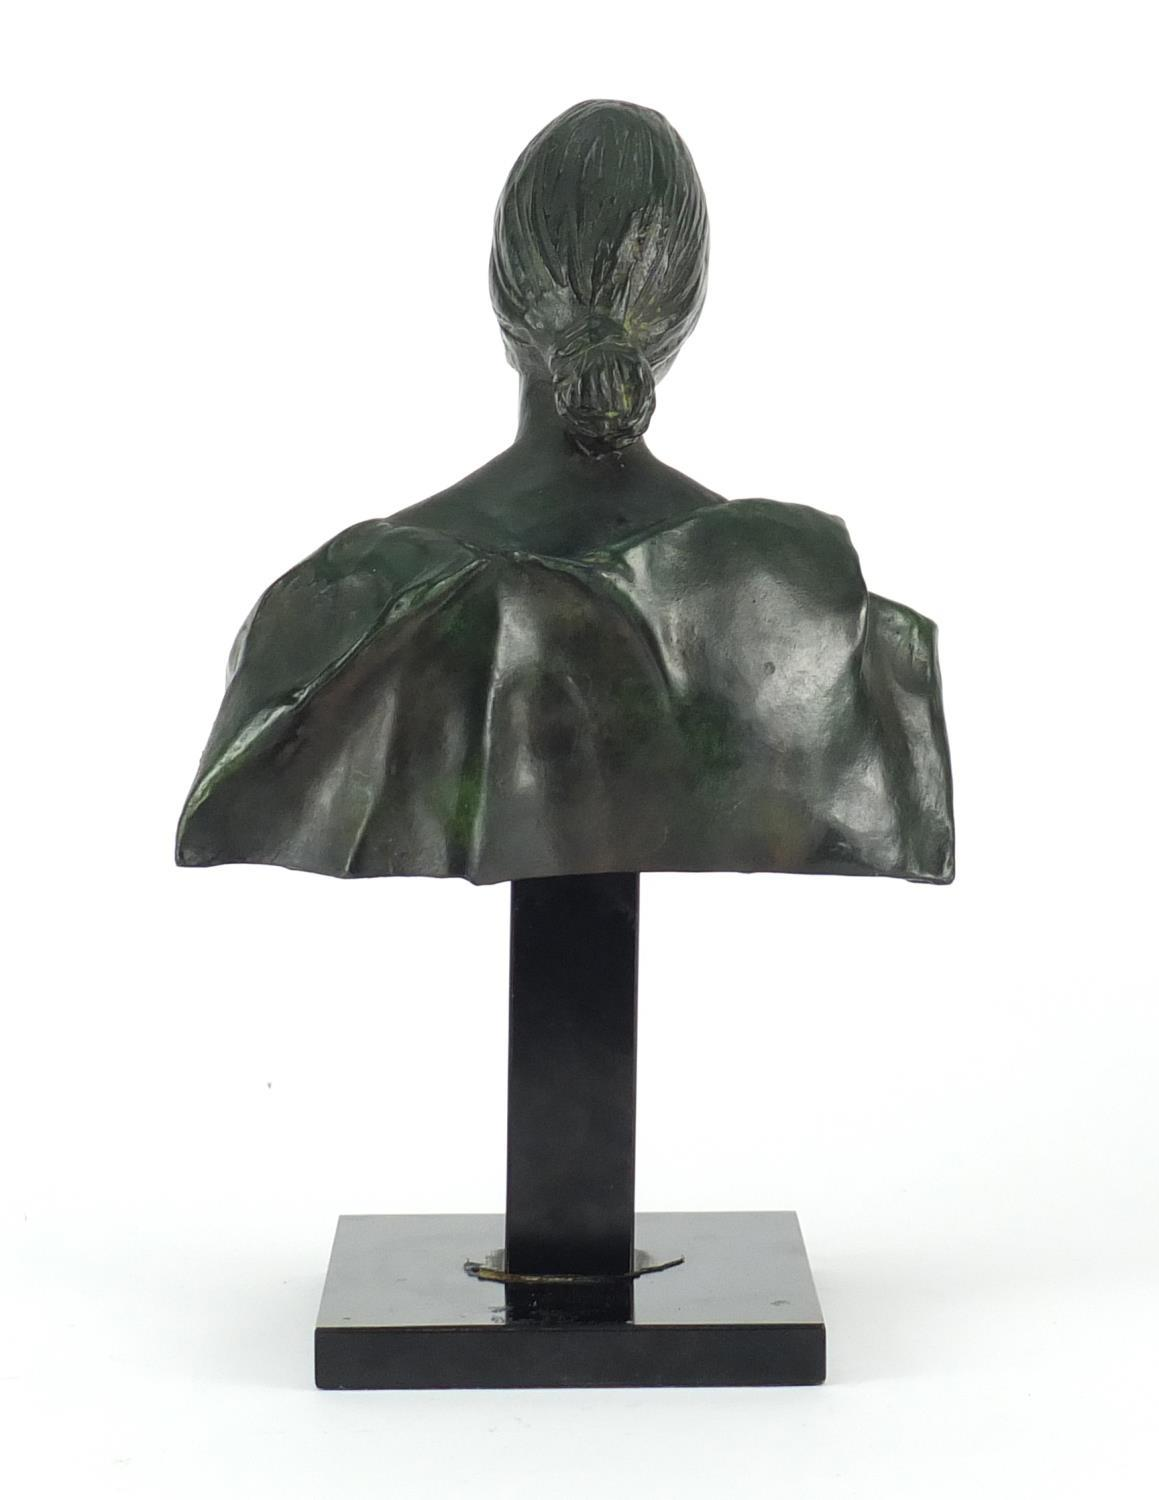 Lot 4 - Francesco Messina, patinated bronze bust titled 'Laura', limited edition 38/149 with certificate